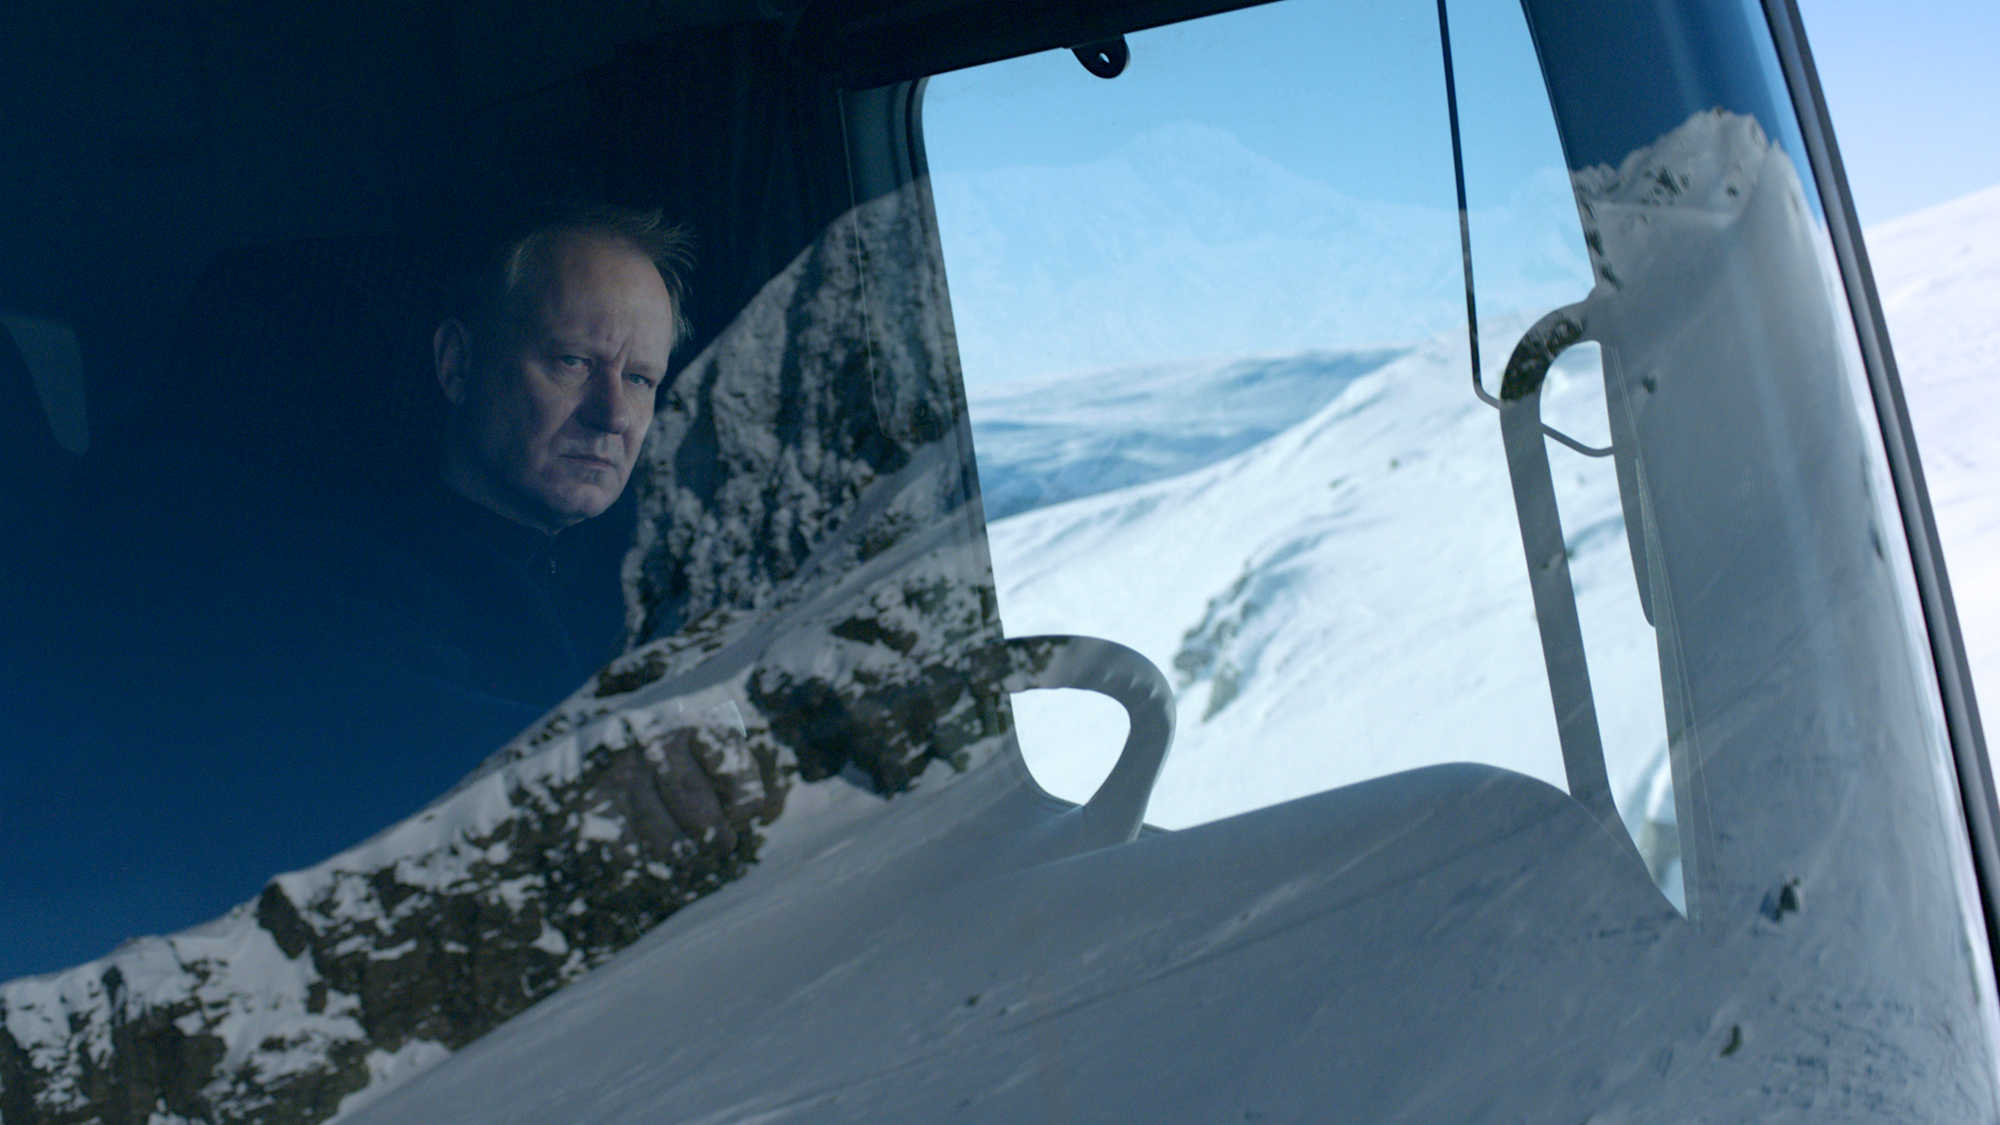 In Order of Disappearance (image 3)